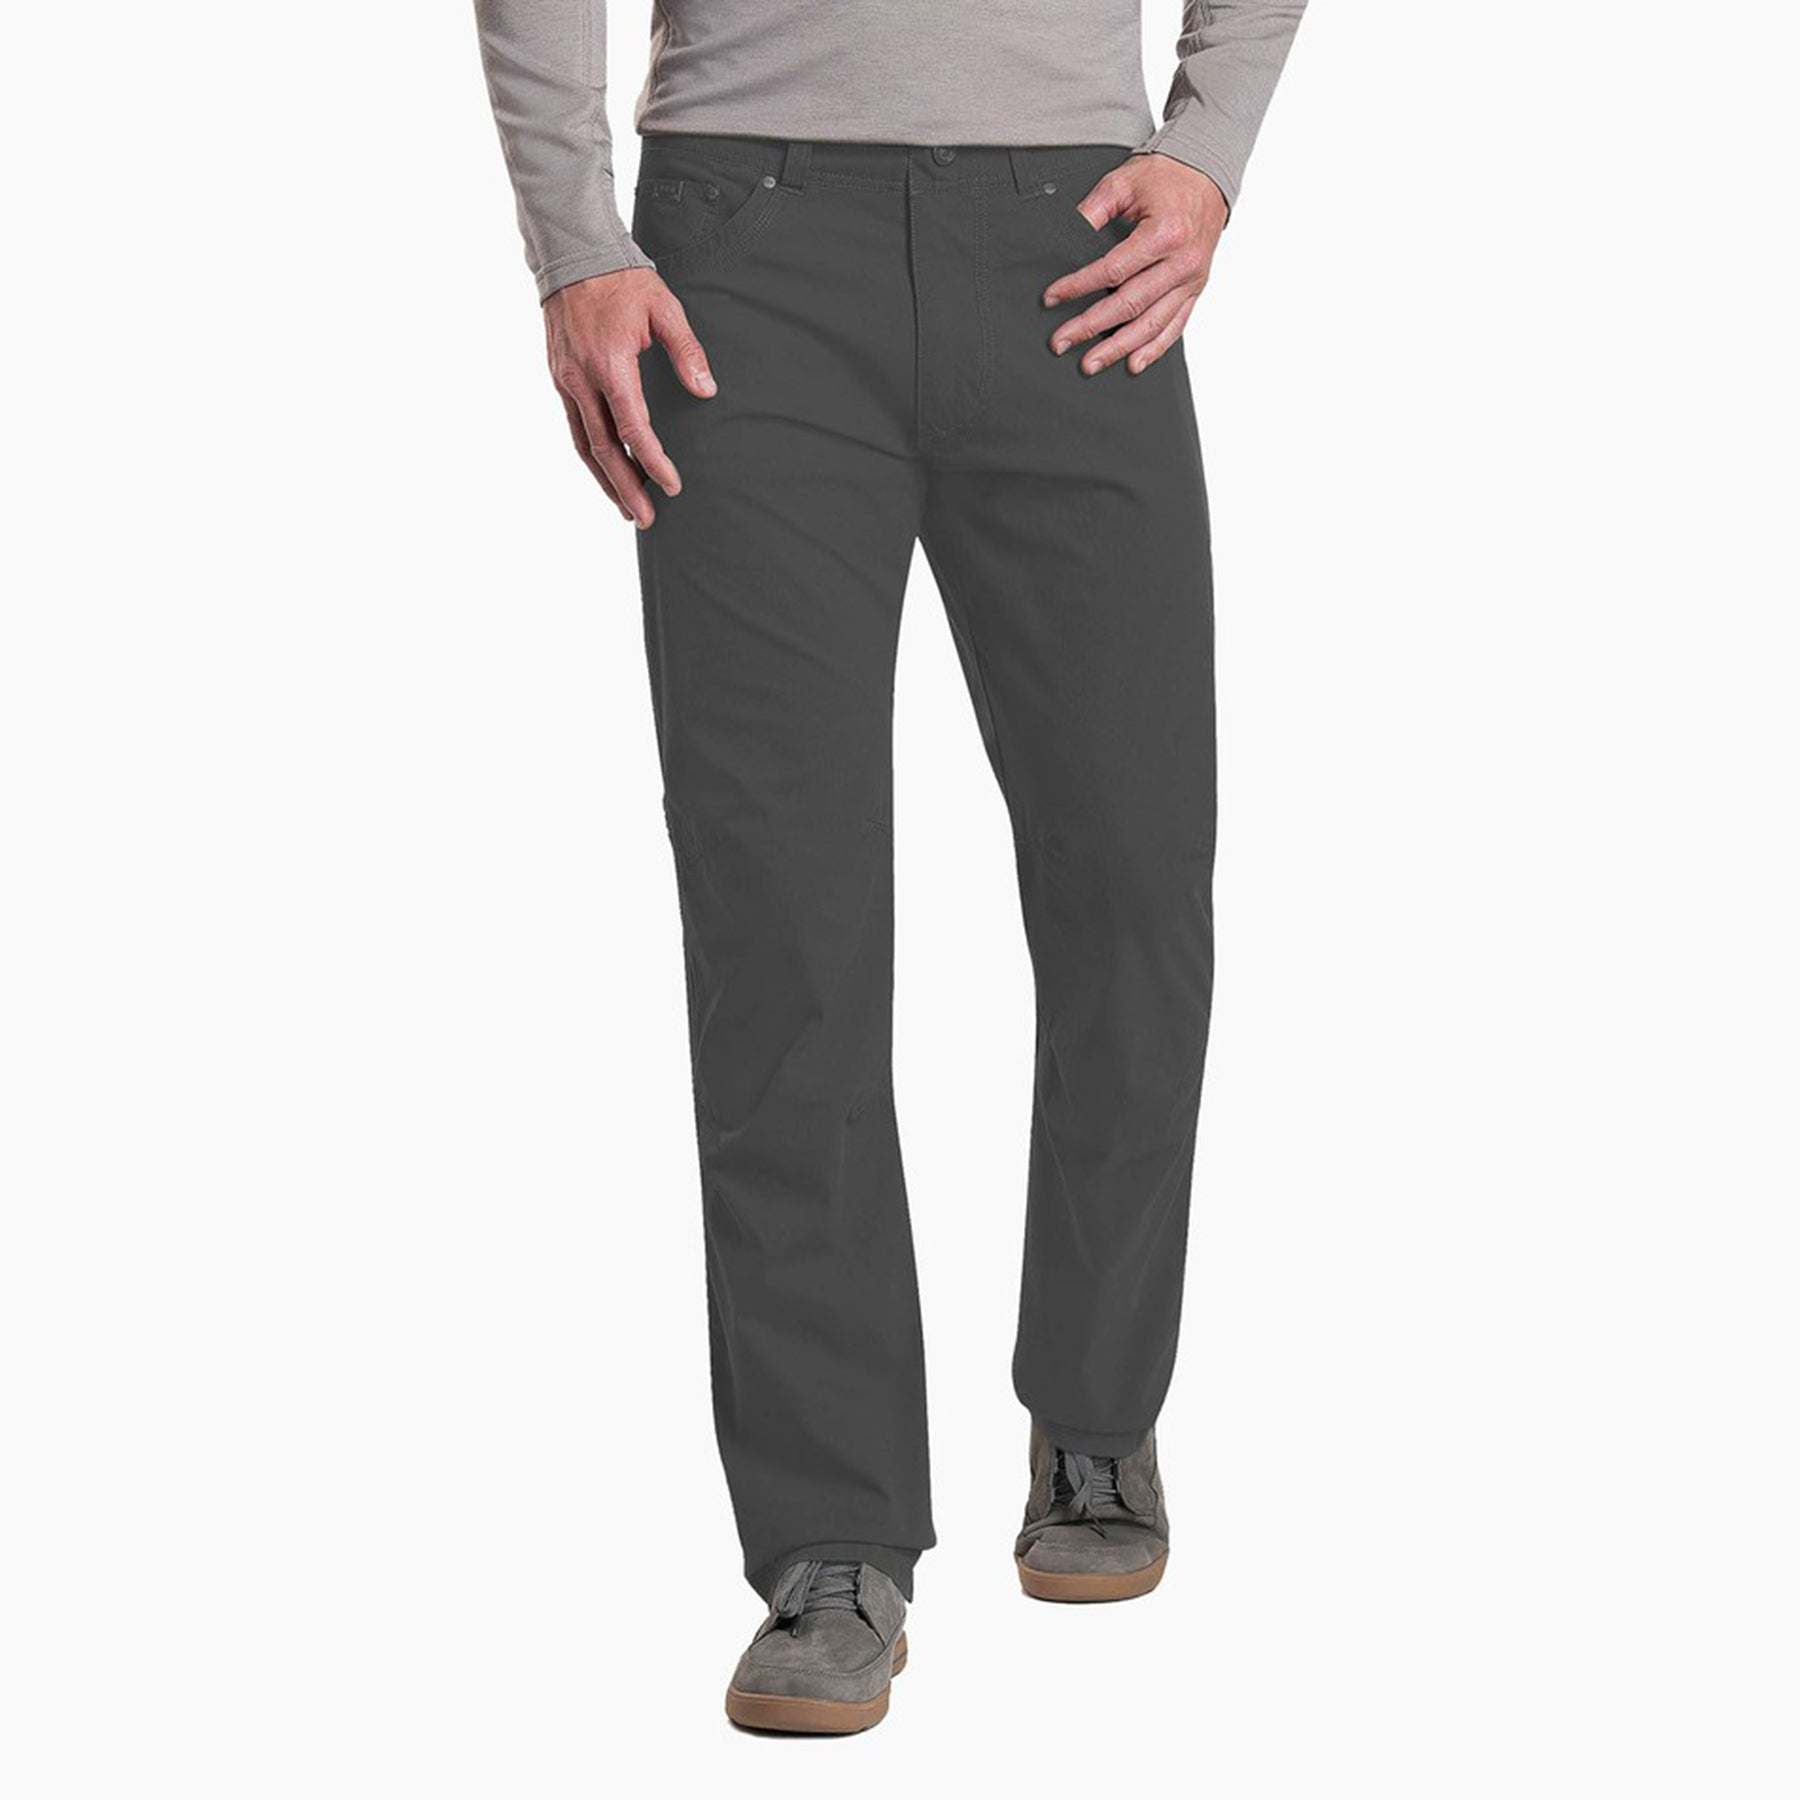 kuhl revolvr pants mens on model front view in color dark grey